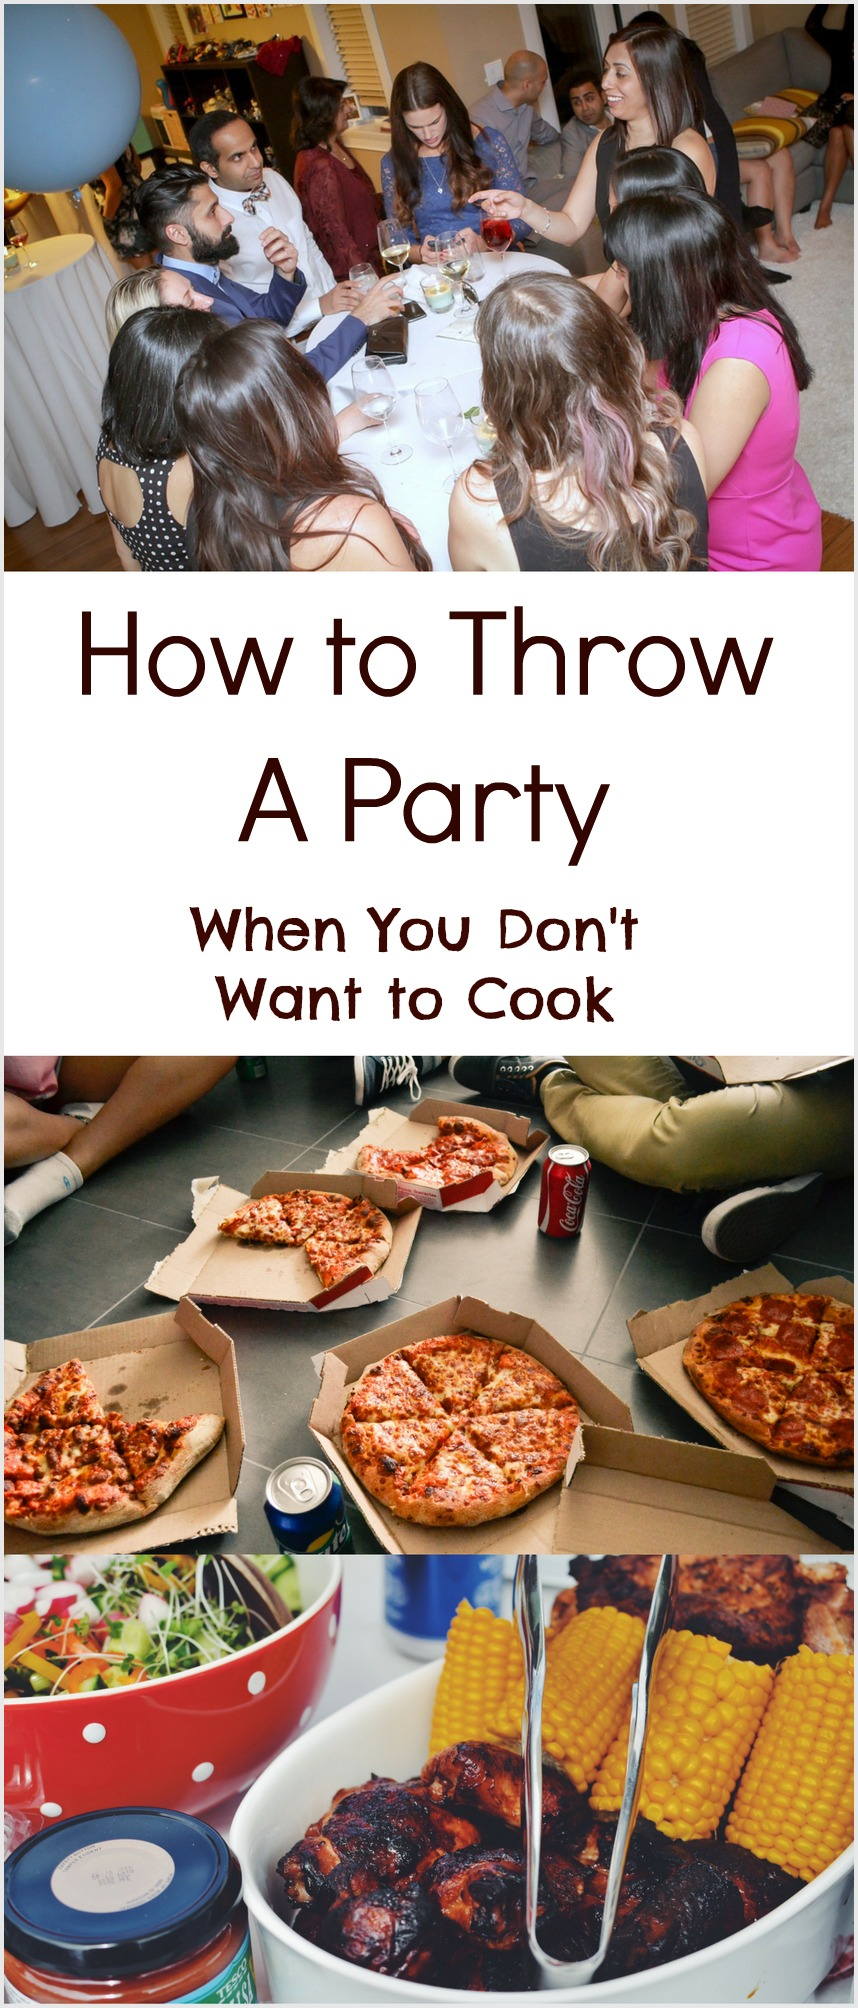 How to Throw A Party When You Don't Want to cook